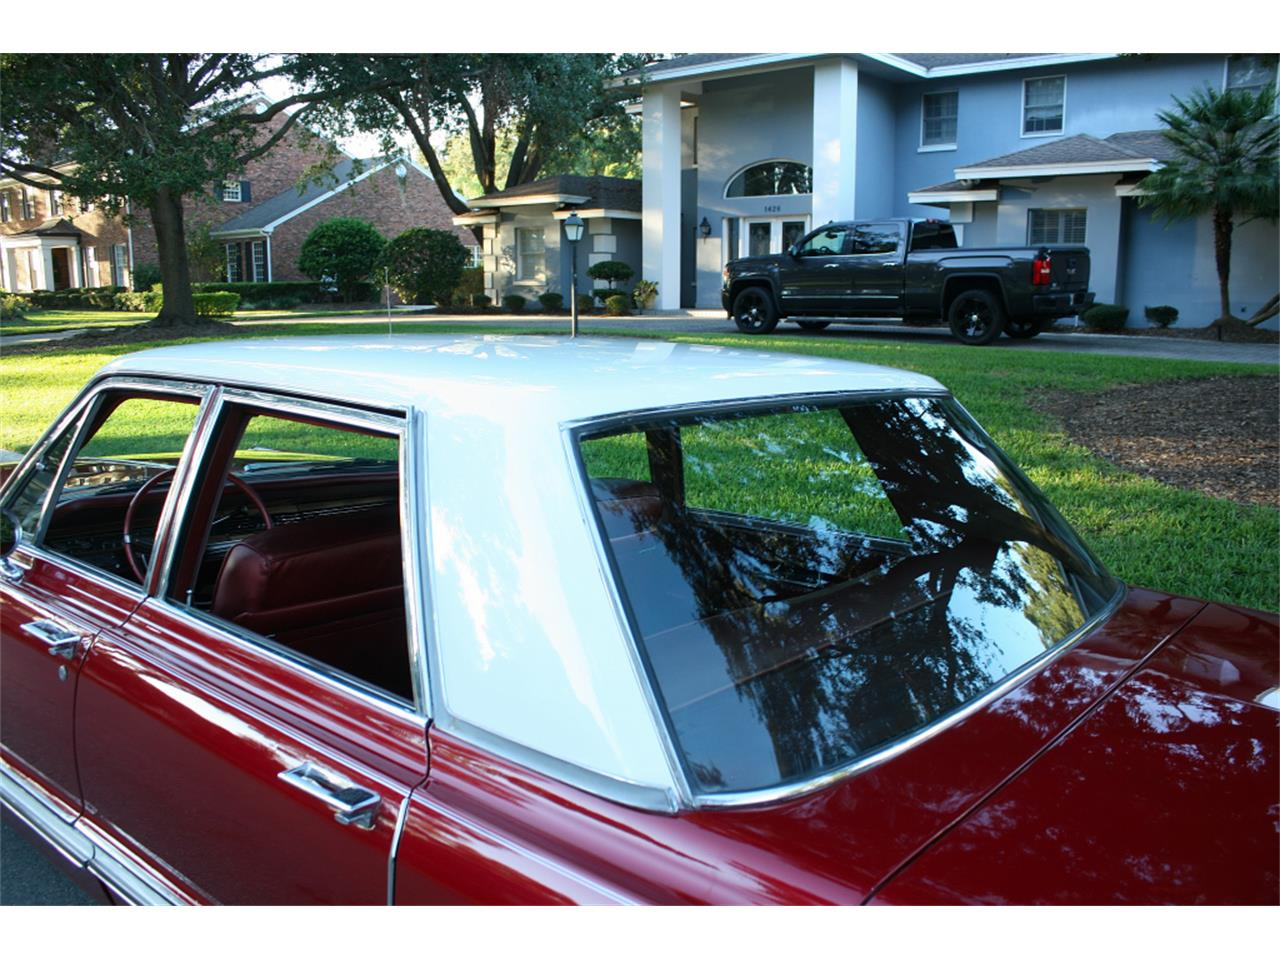 Large Picture of '68 Chrysler Imperial - $16,500.00 - MA1H